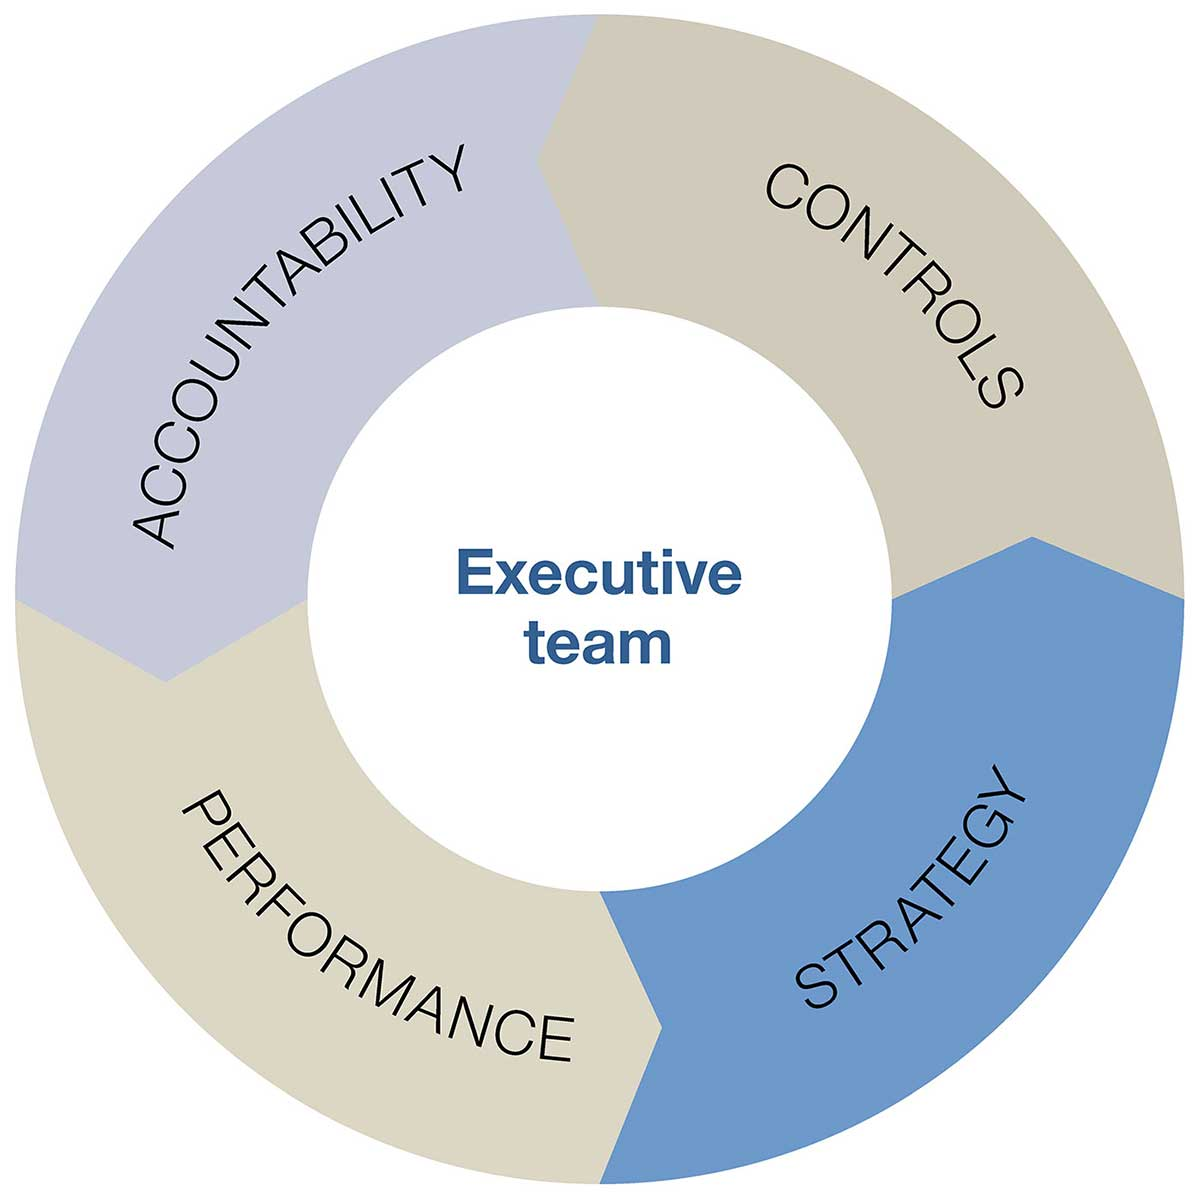 Doughnut chart divided into four equal sections labelled: 'Accountability', 'Controls', 'Strategy', 'Performance'. The centre of the doughnut is labelled 'Executive team'. - click to view larger image